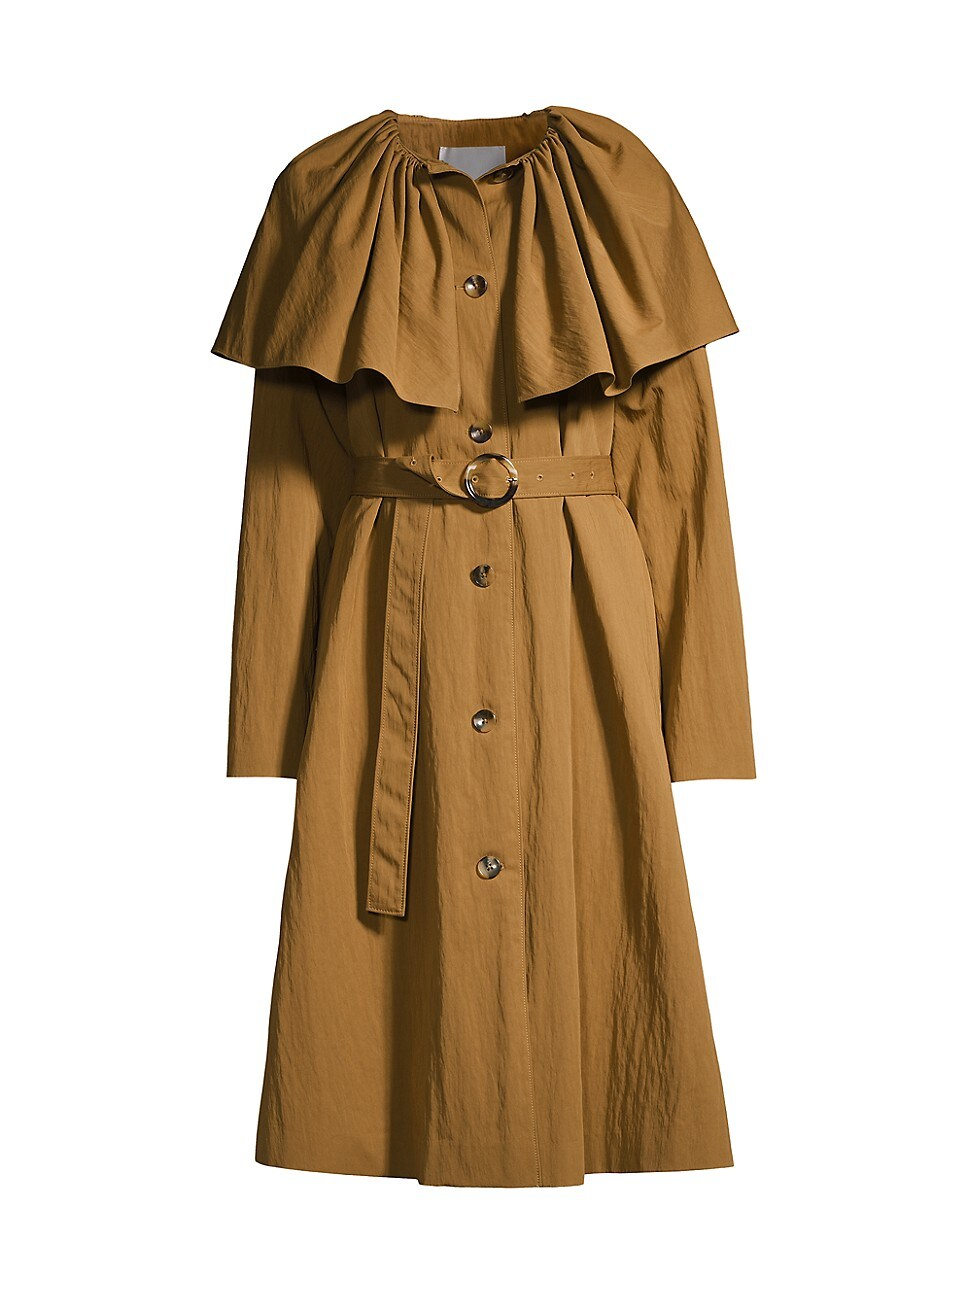 Rebecca Taylor Cottons WOMEN'S CAPED COTTON TRENCH COAT